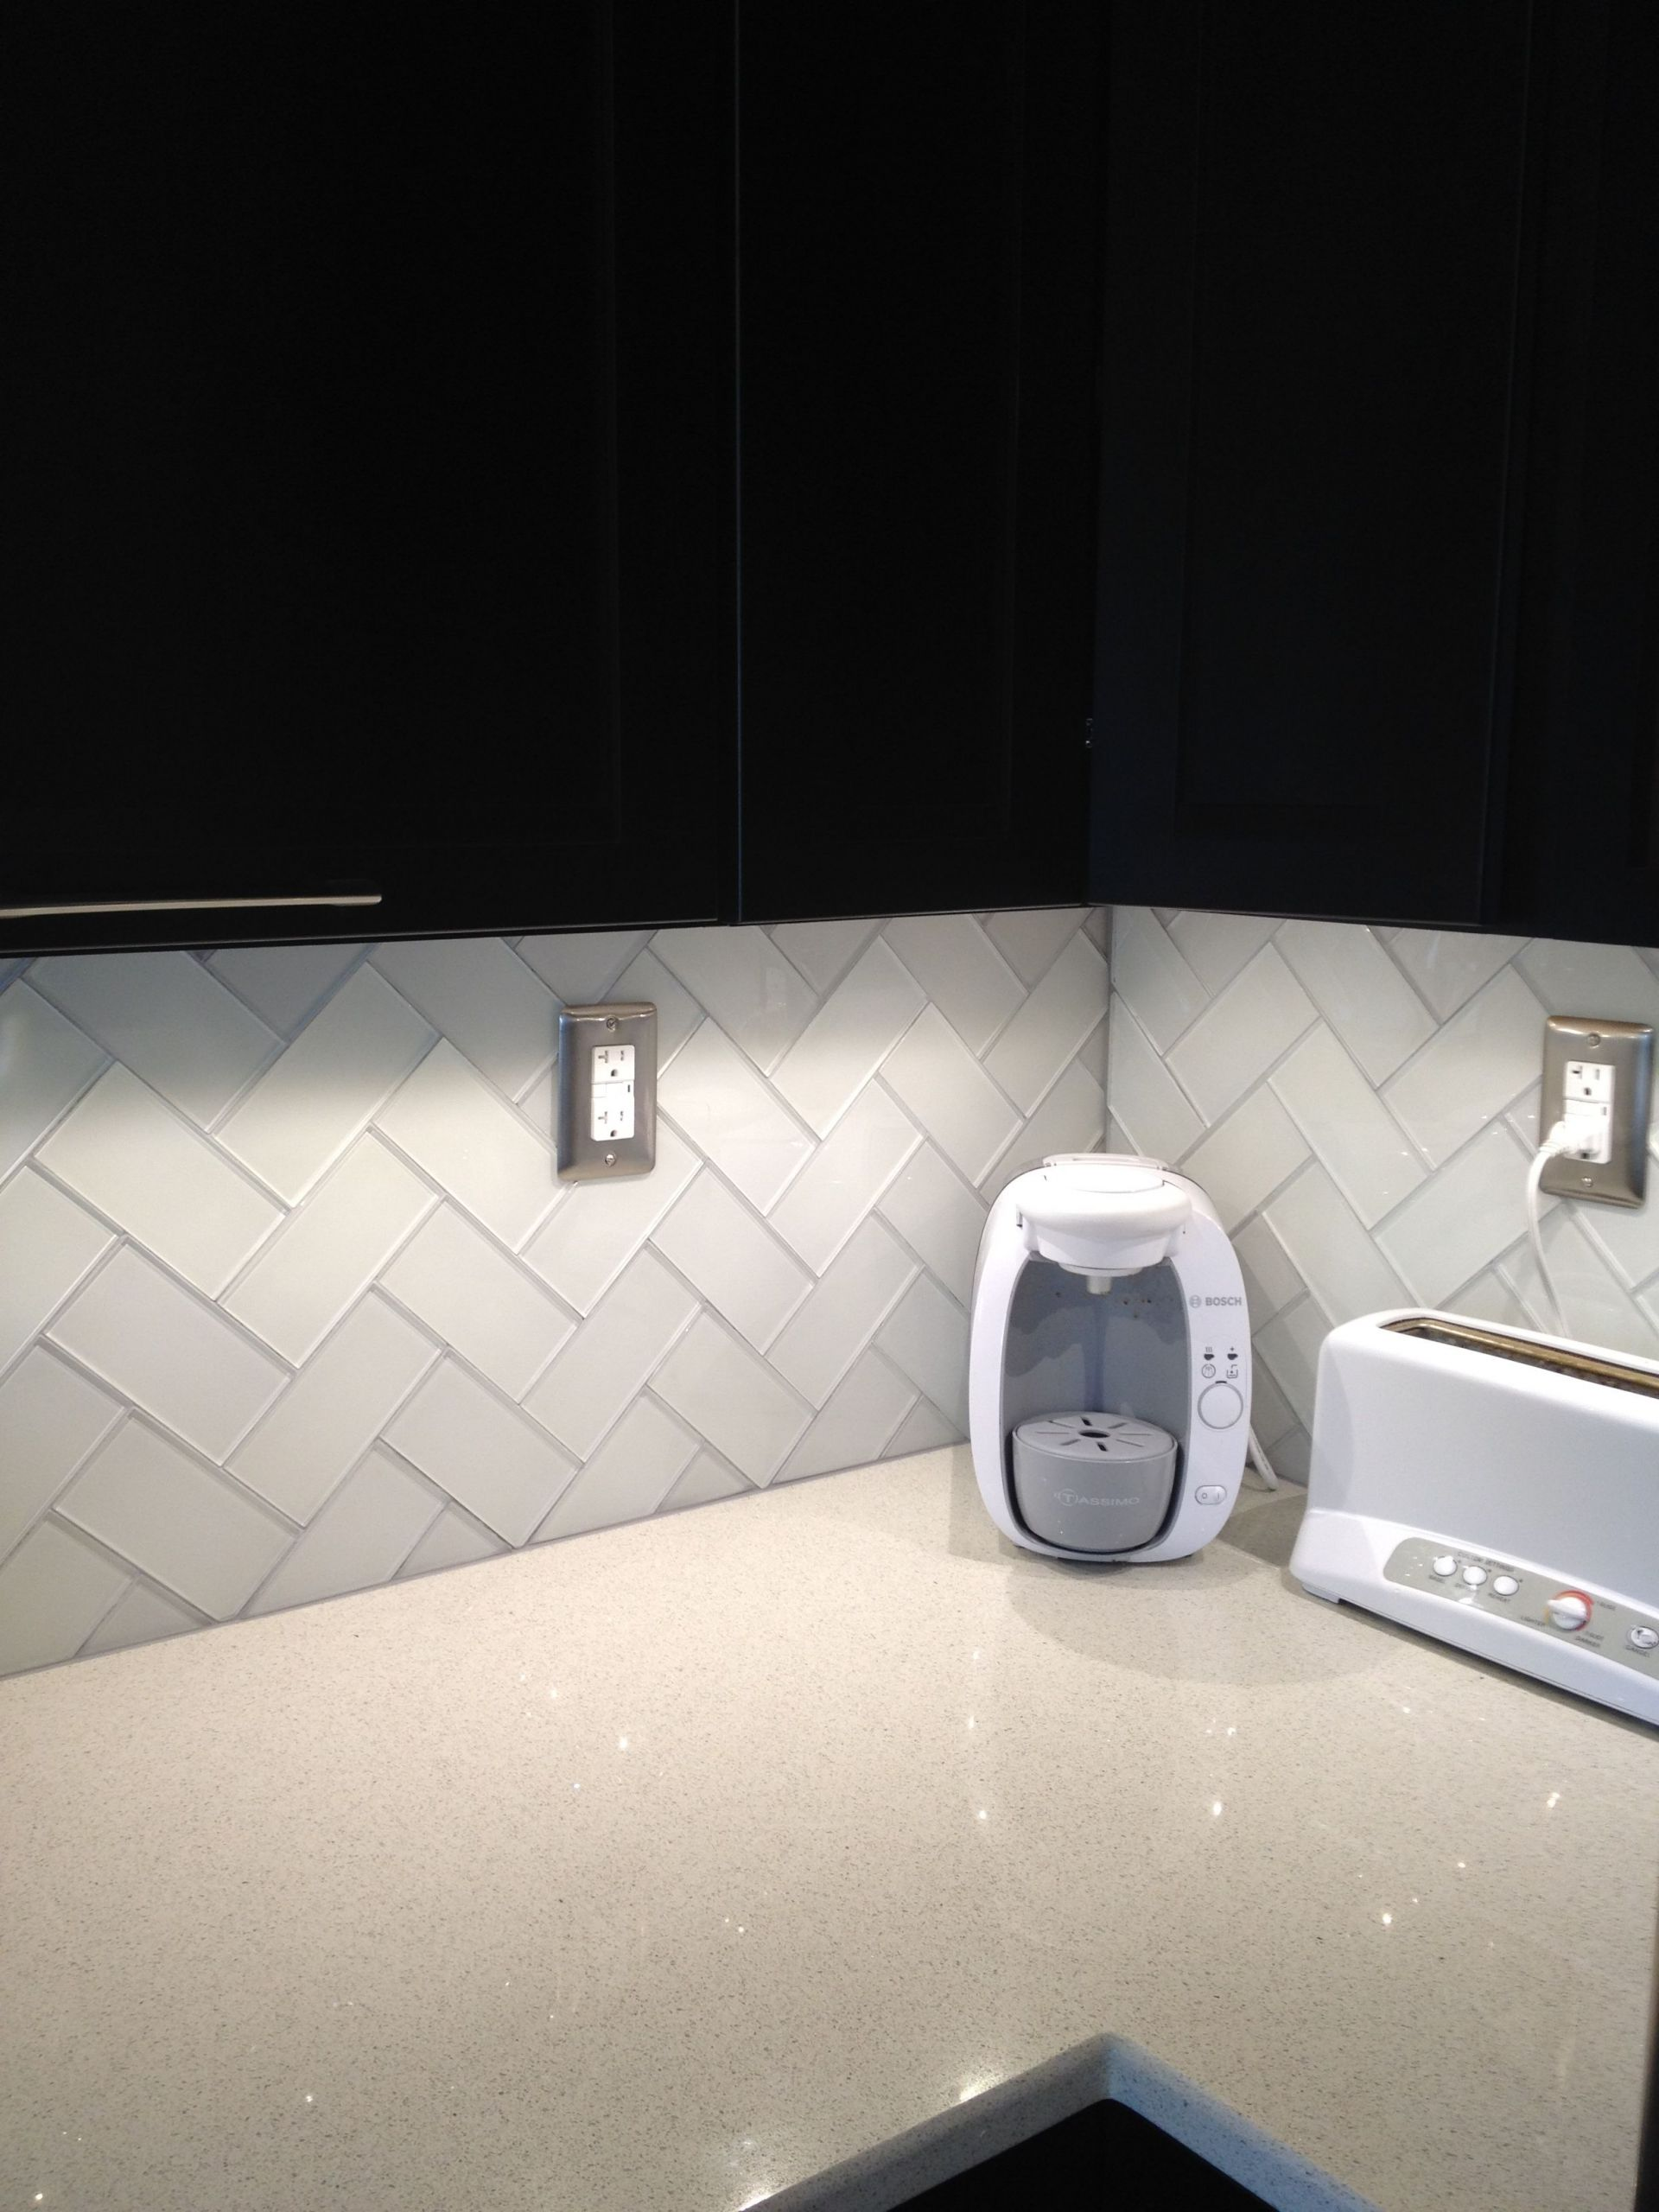 Backsplash Herringbone Subway Tile Fresh Herringbone Pattern White Glass Subway Tile Added Delorean